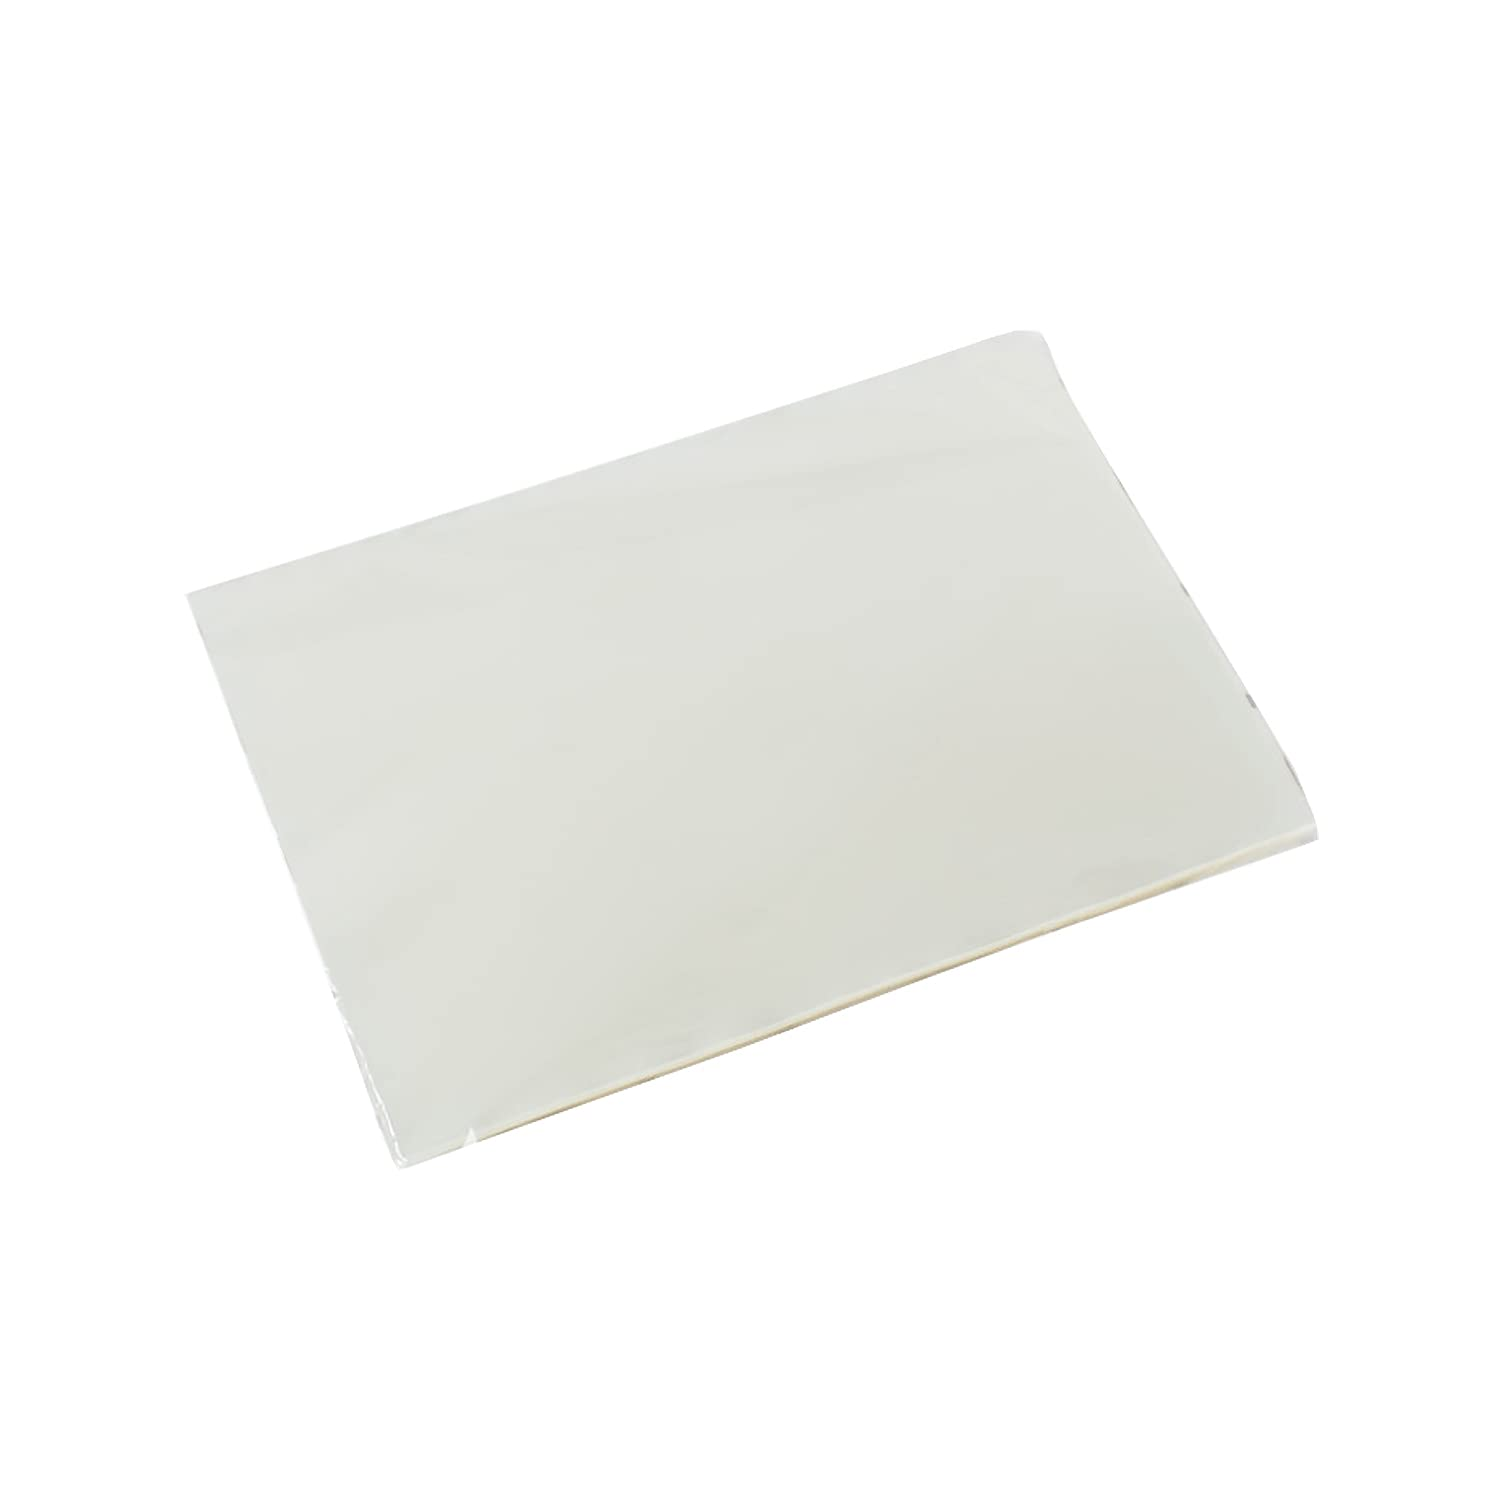 50 Count Edible Rectangle Rice ,9x12.6 inches for candy packaging or food decoration